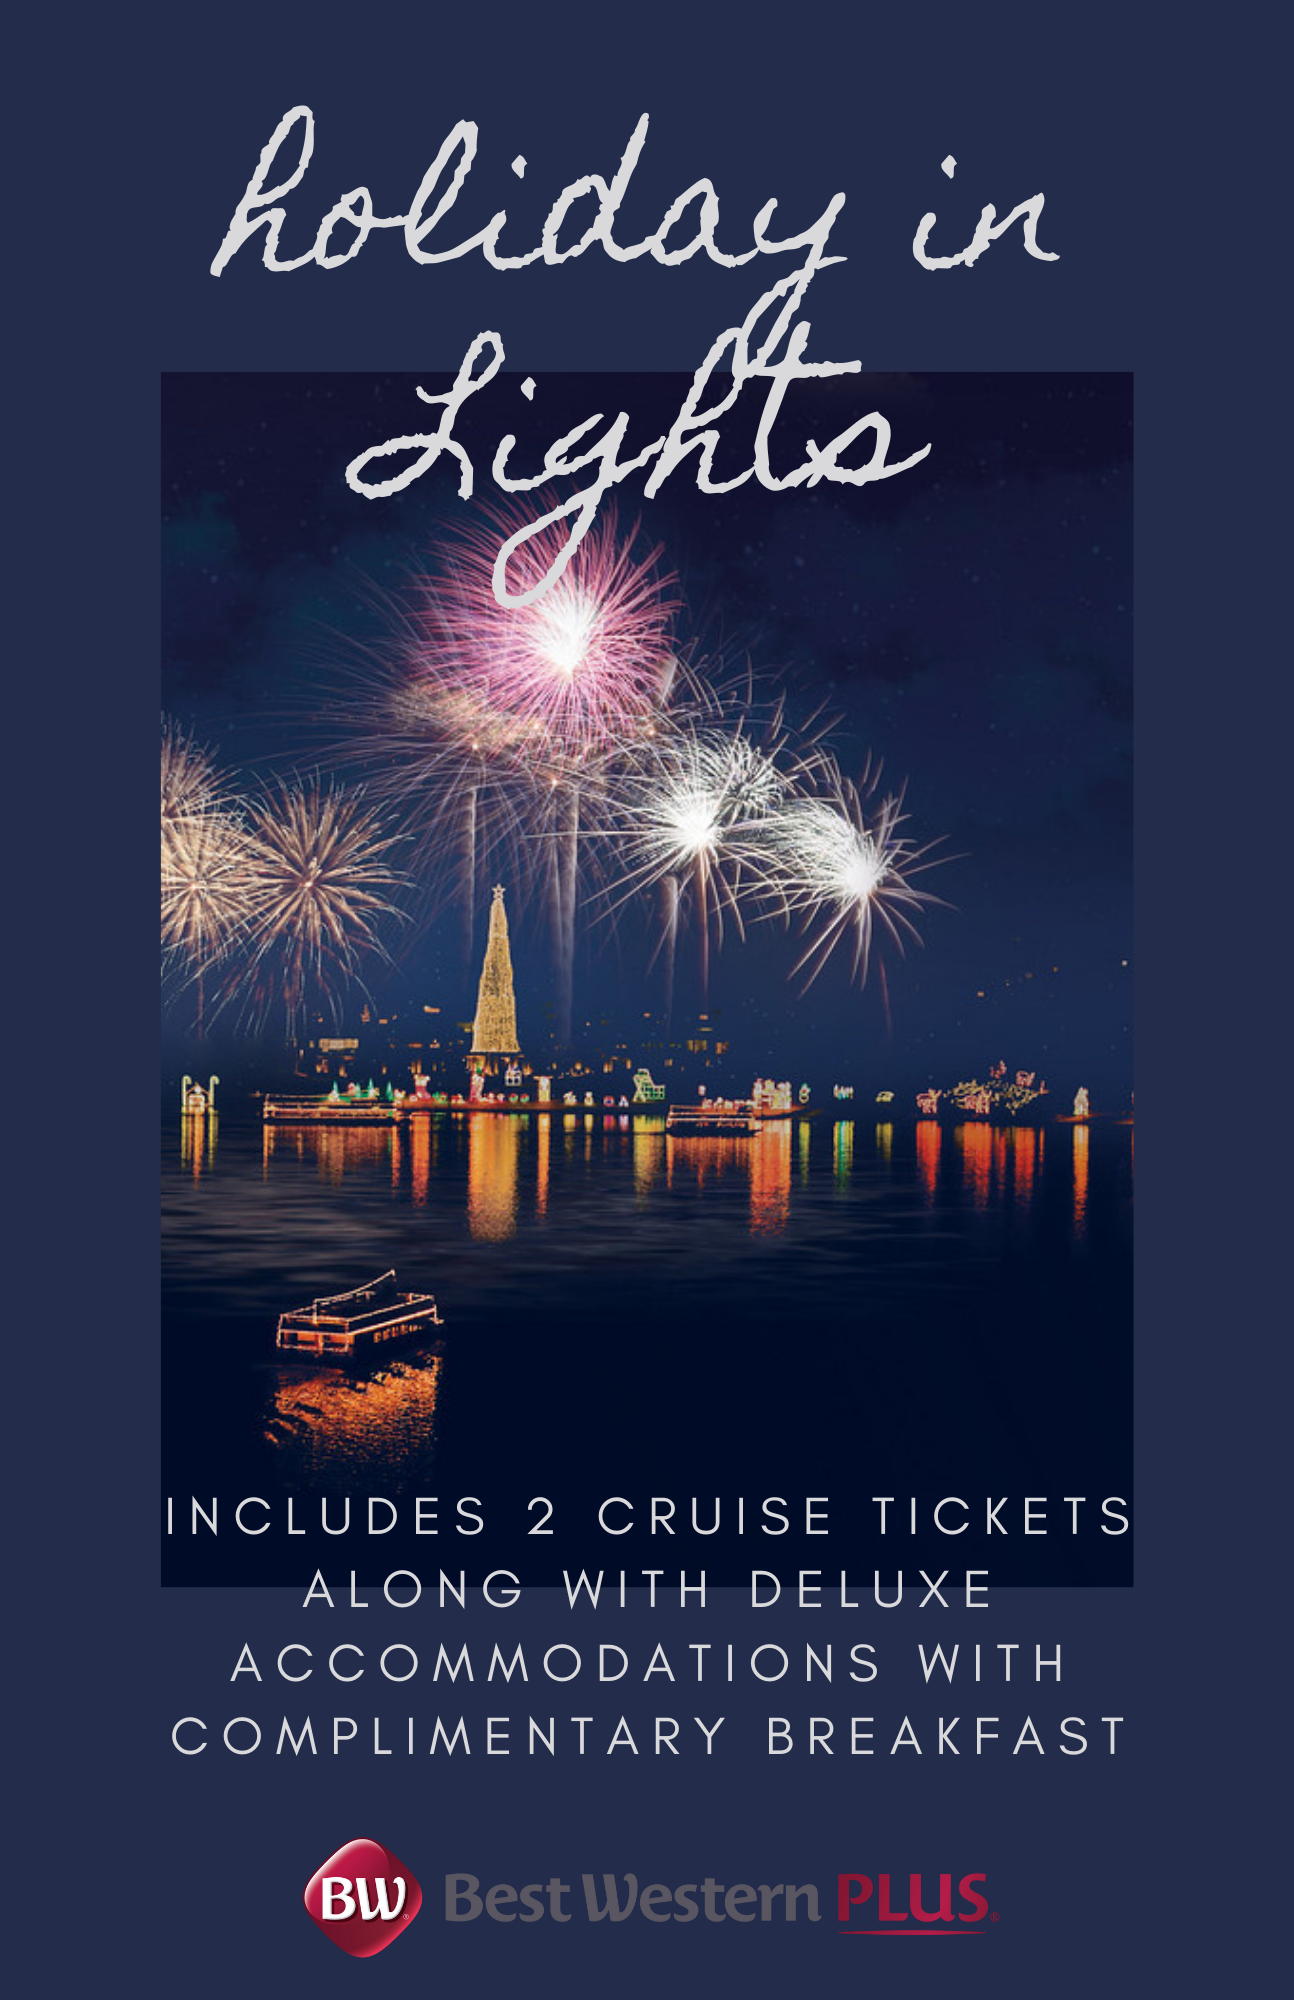 Holiday in Lights - Includes 2 Cruise Tickets along with deluxe accommodations with complimentary breakfast. BestWestern Plus